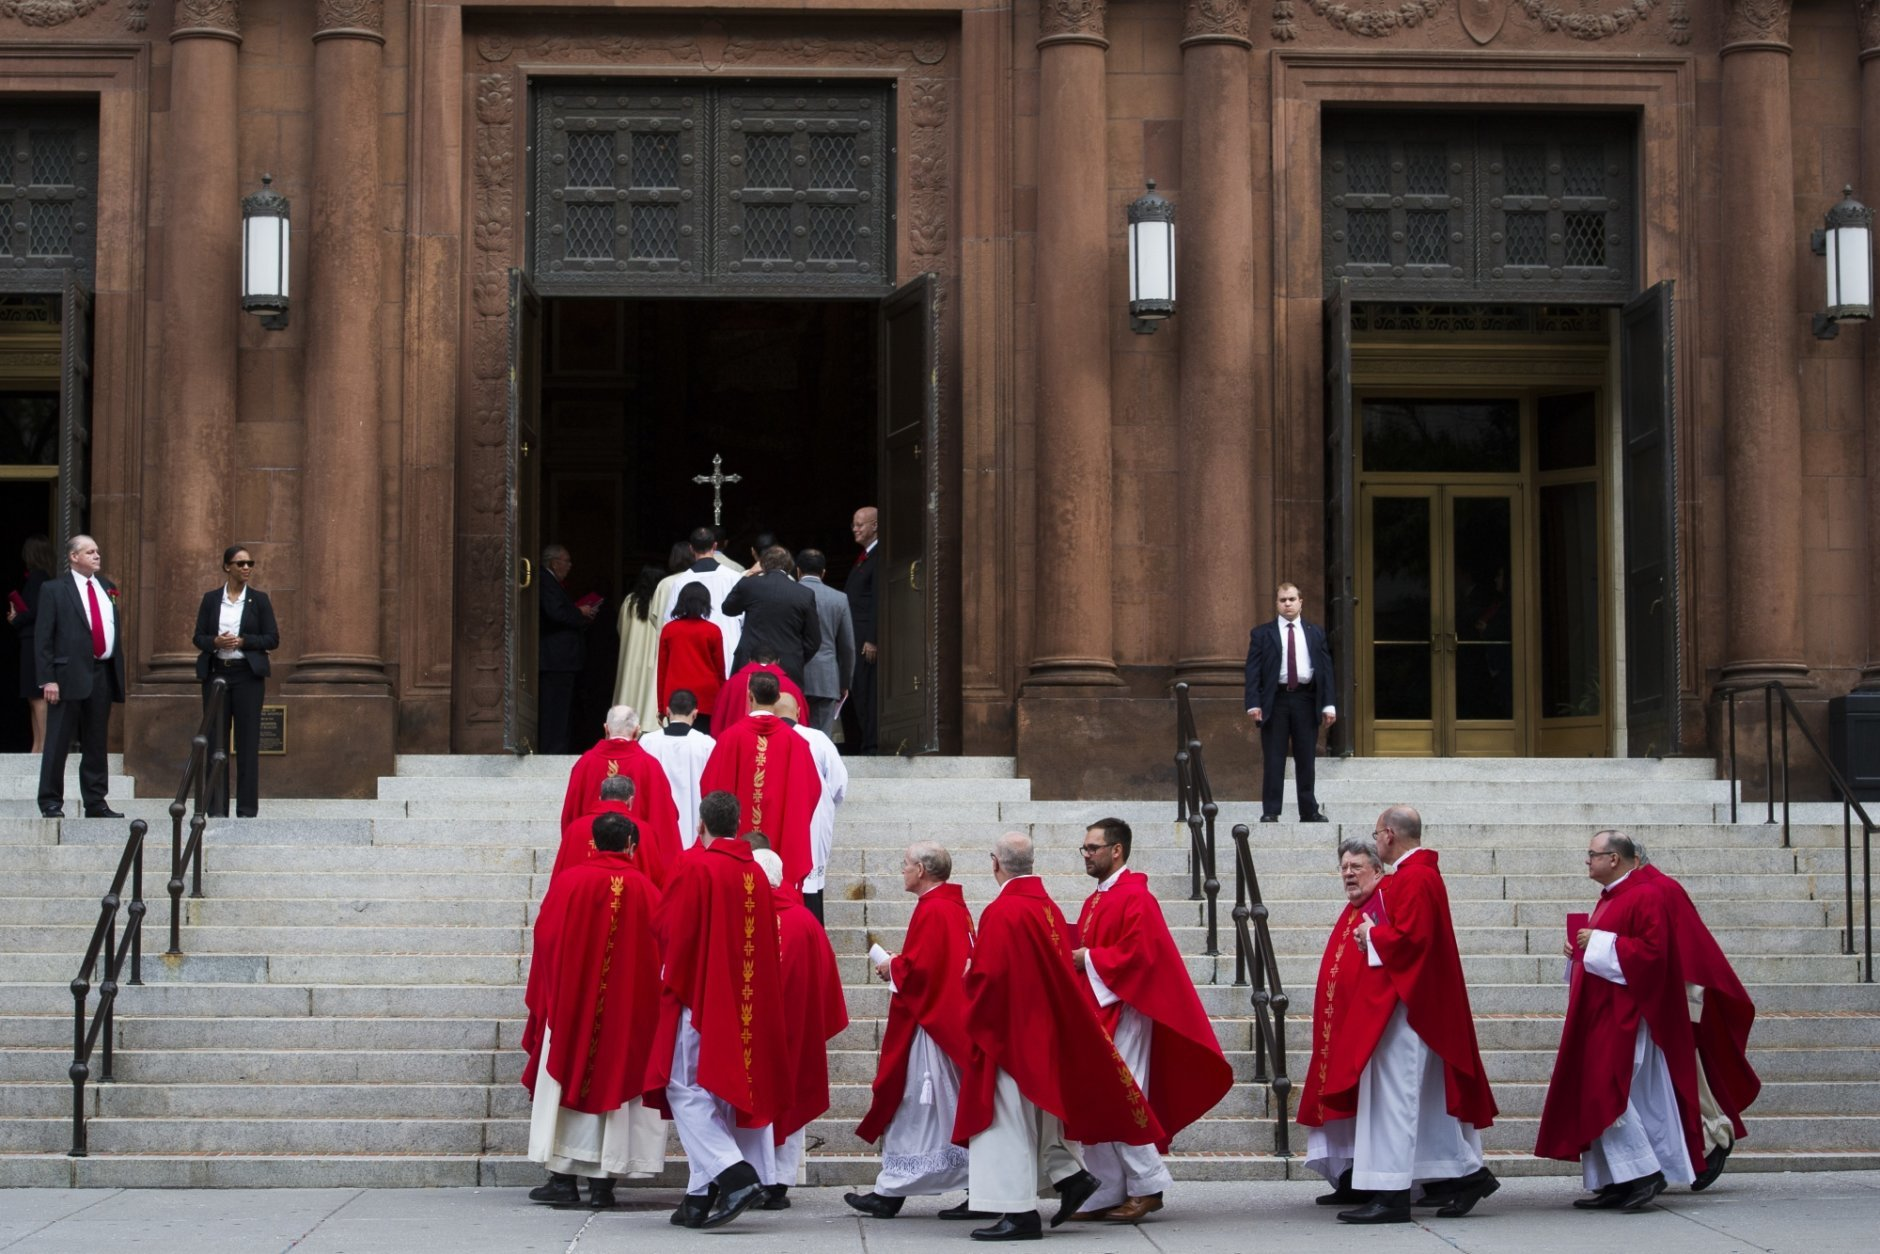 Celebrants enter the Cathedral of St. Matthew the Apostle for the 66th Red Mass, before the U.S. Supreme Court's new term opens, in Washington, Sunday, Sept. 30, 2018. The Court's session opens Monday, Oct. 1. (AP Photo/Cliff Owen)